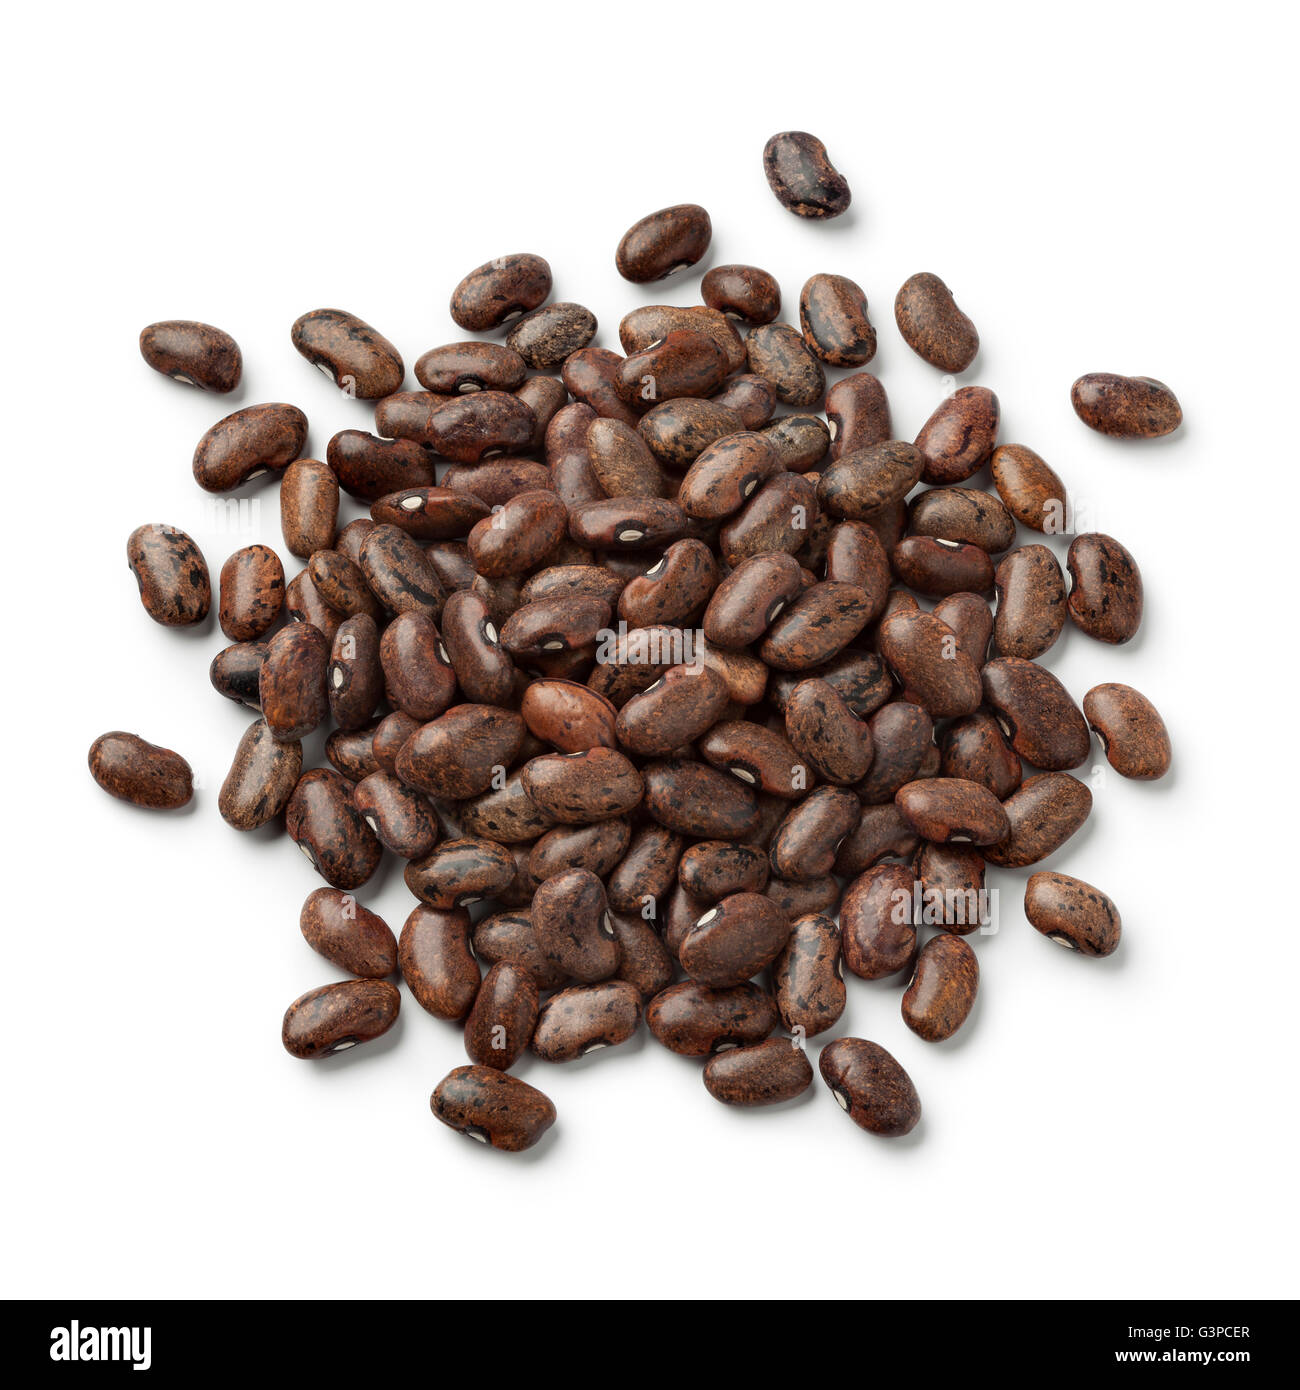 Heap of dried moro beans on white background - Stock Image